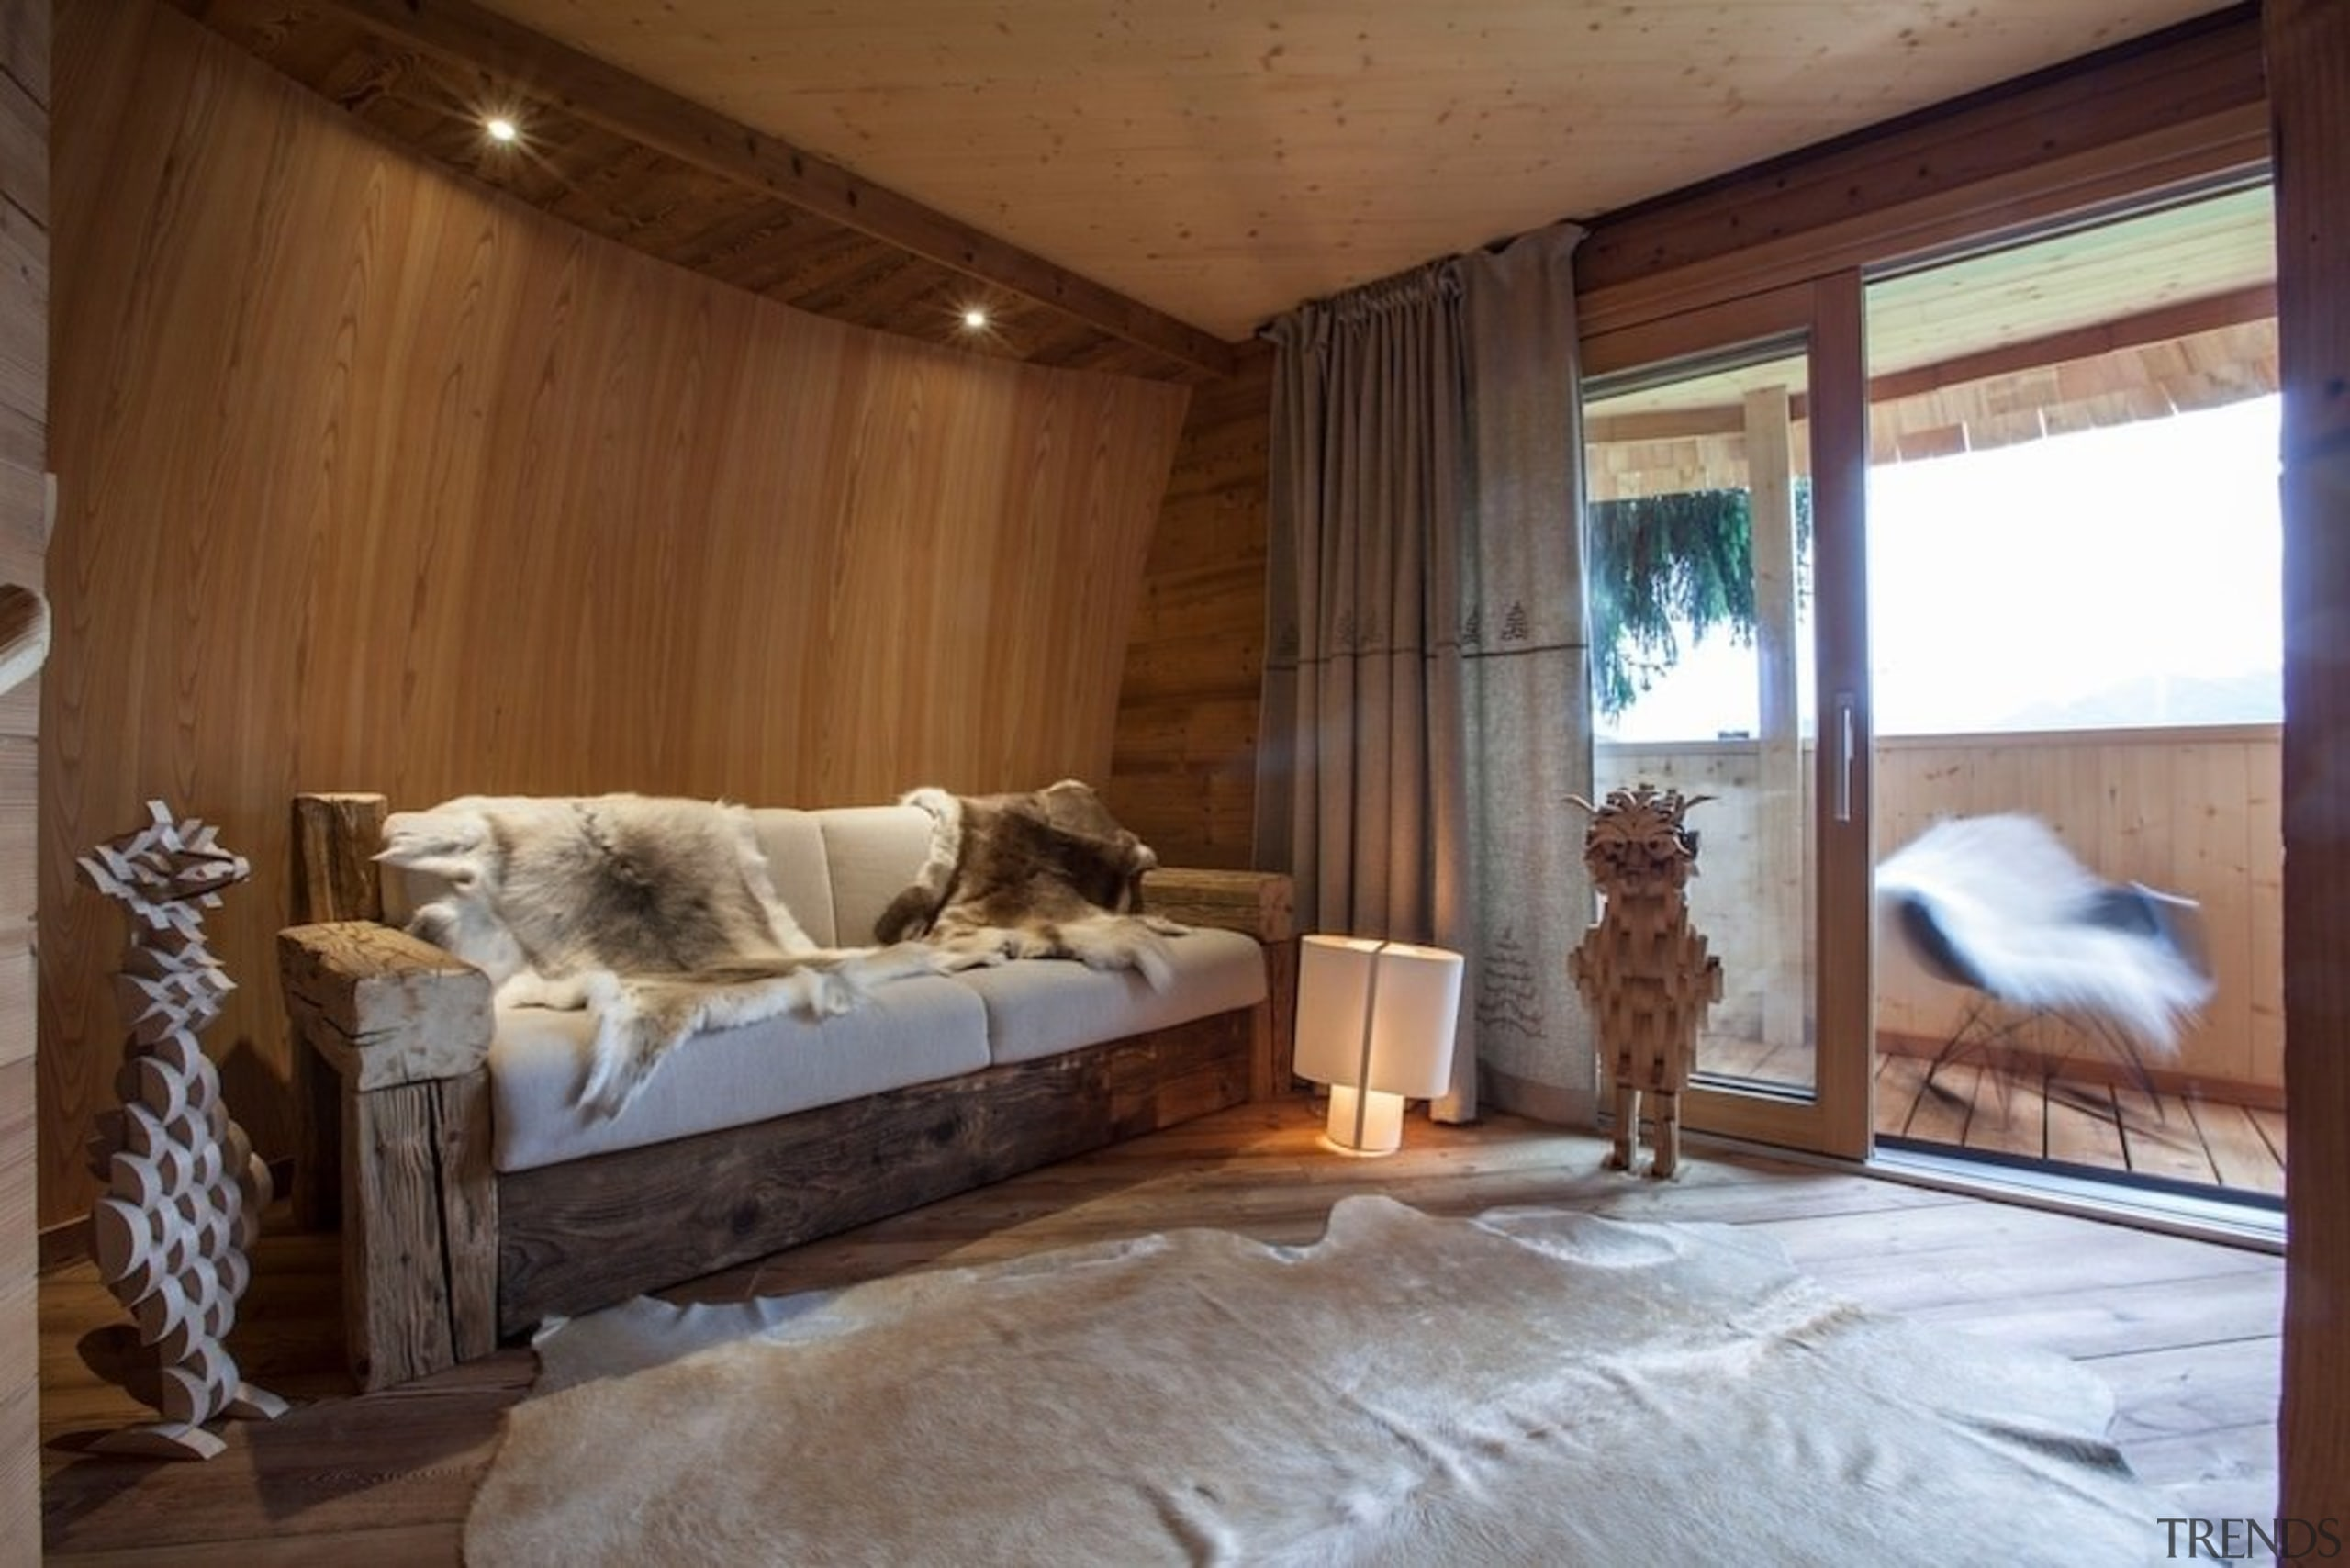 The curved walls reinforce the cozy, cabin-like feel bed, bed frame, bedroom, home, house, interior design, log cabin, property, room, window, wood, brown